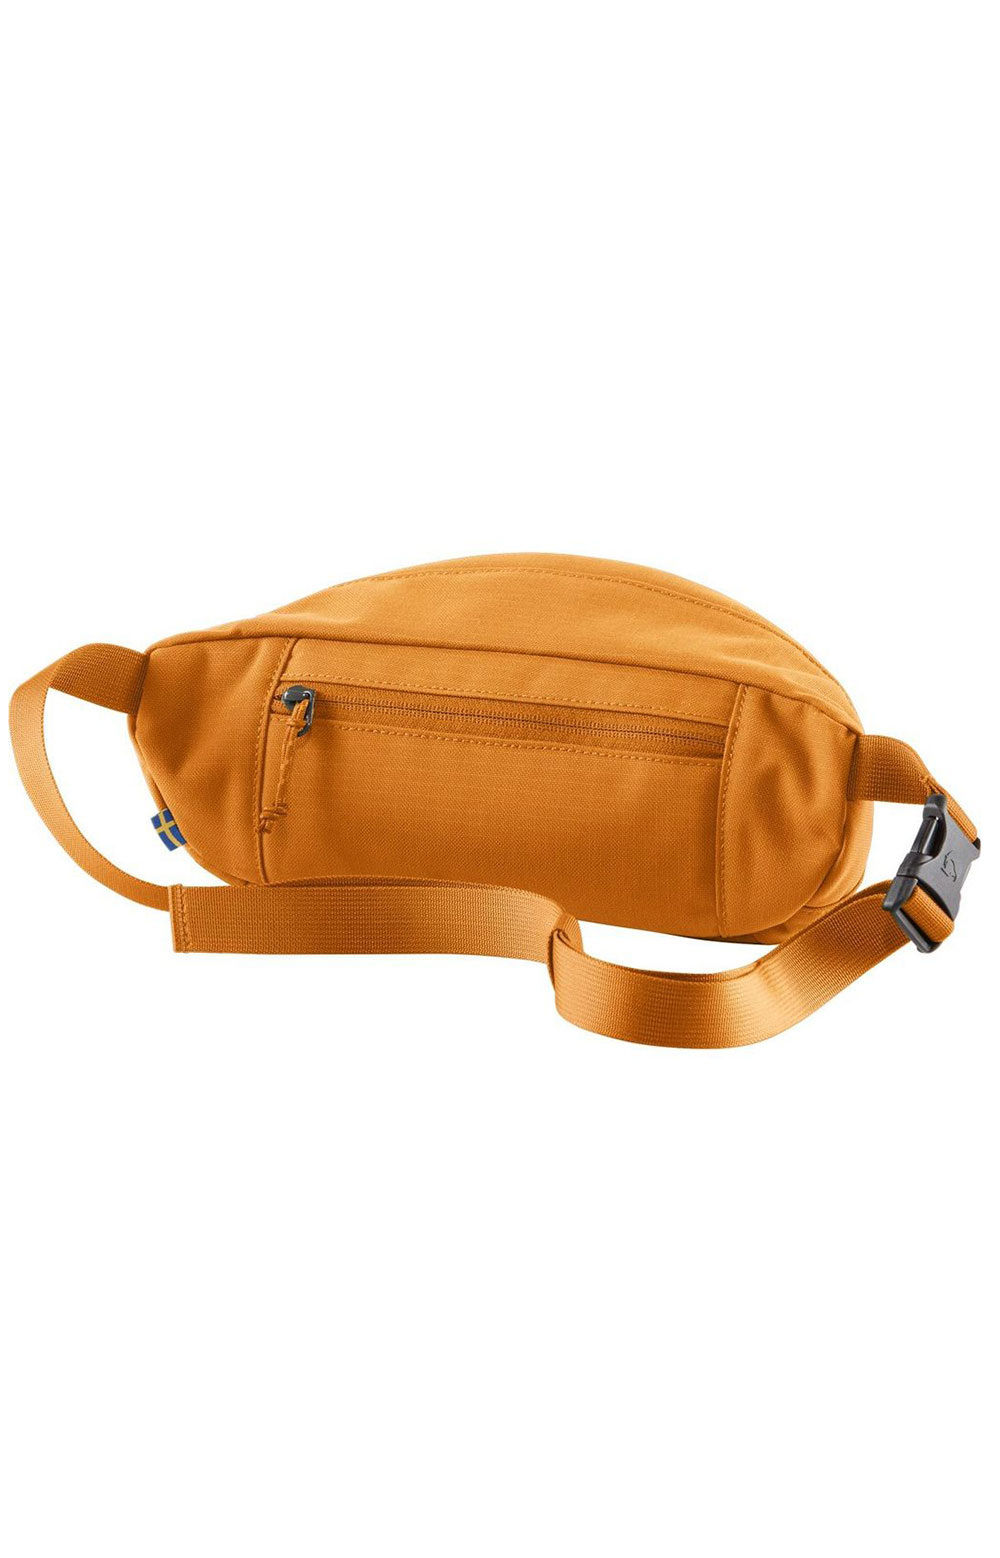 Ulvo Hip Pack Medium - Red/Gold 2